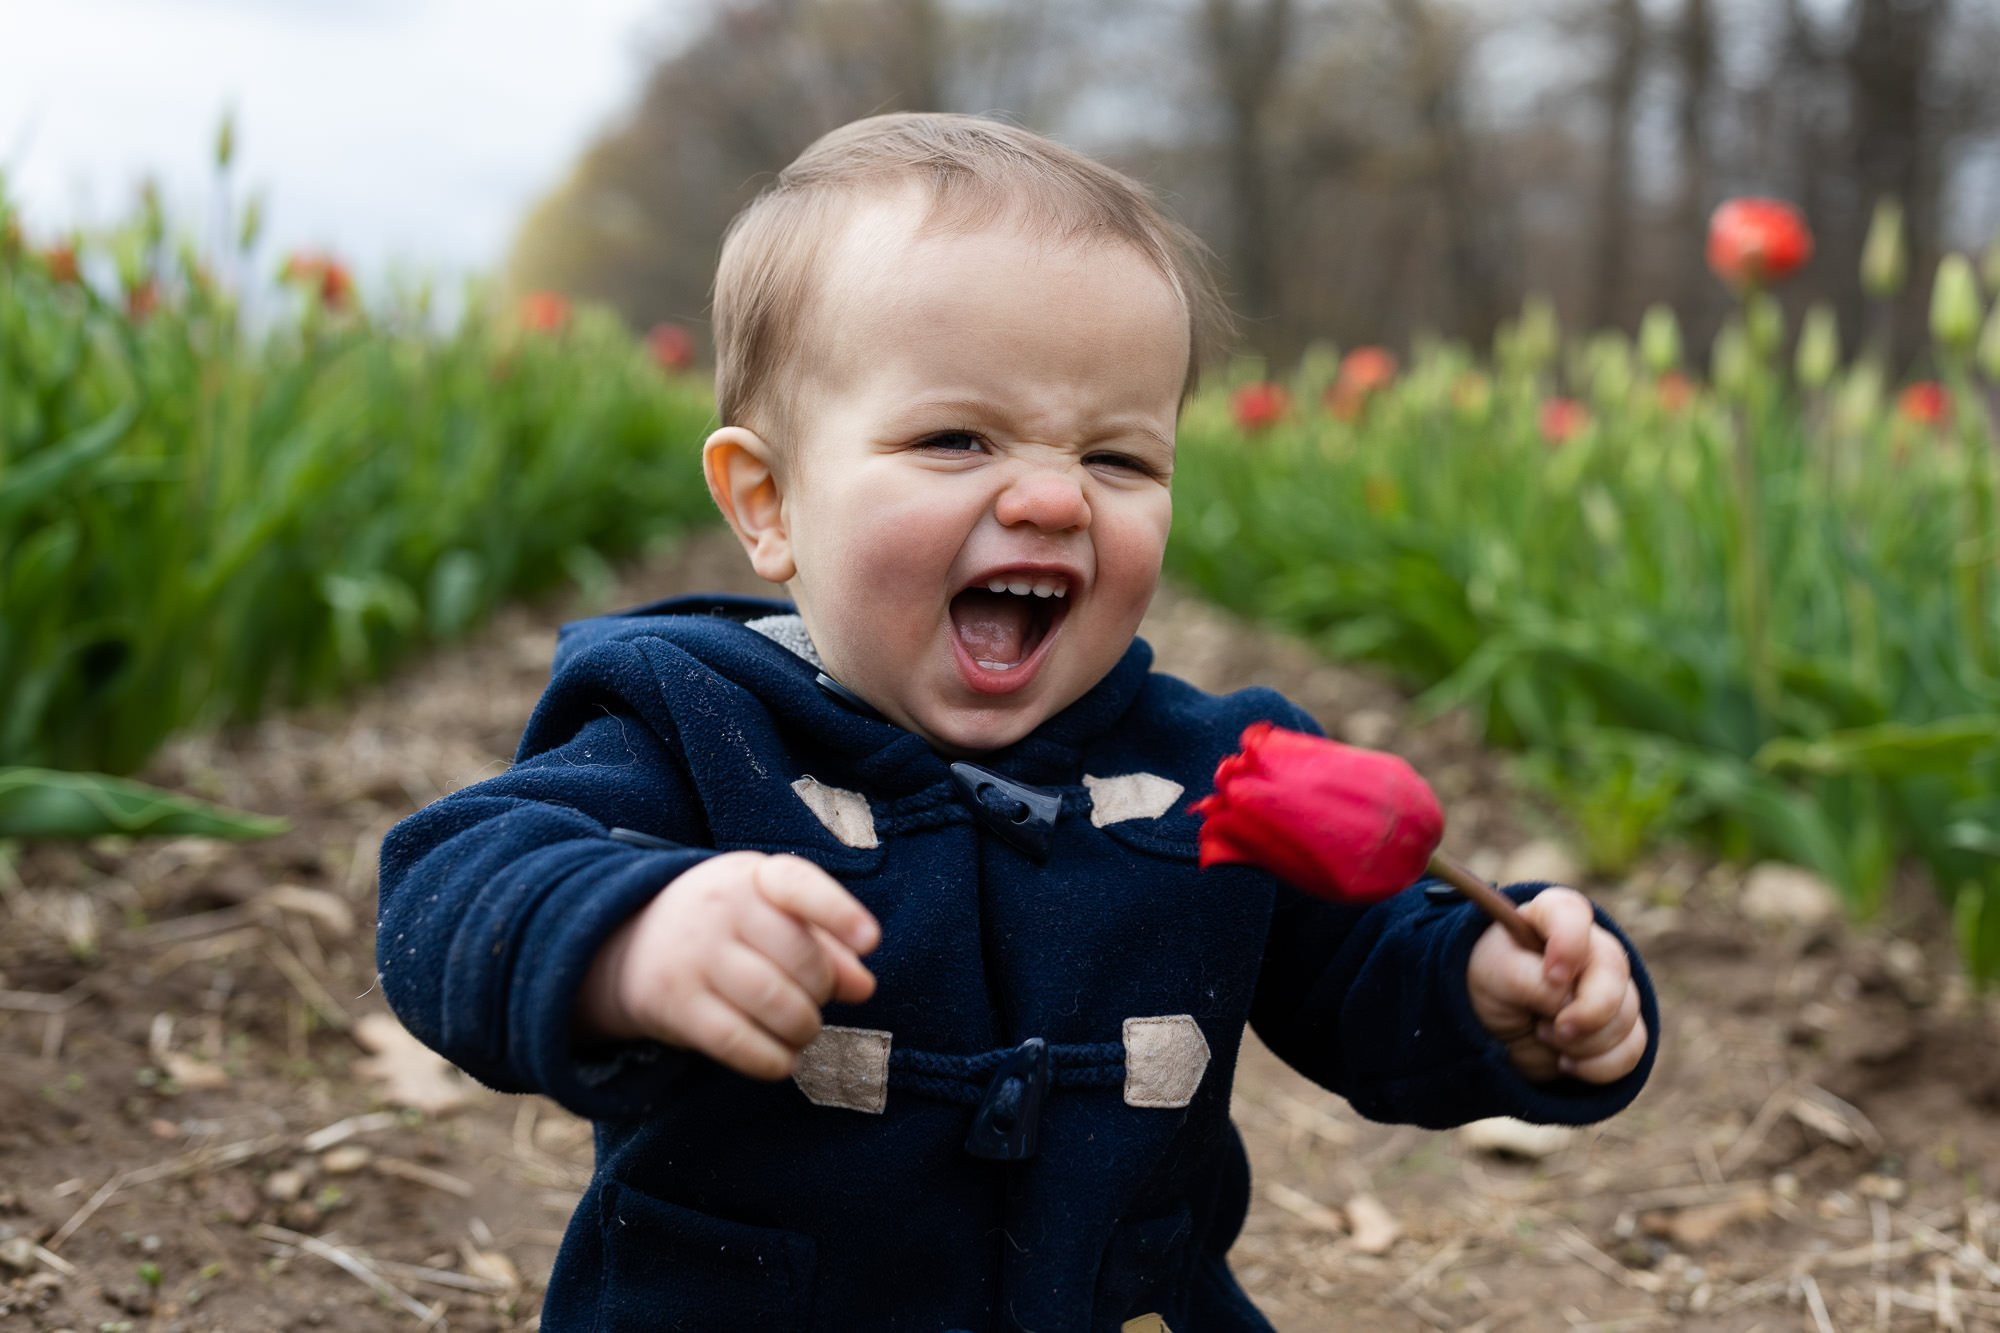 A little boy laughing hysterically holding a tulip during a Rhode Island documentary family photo session